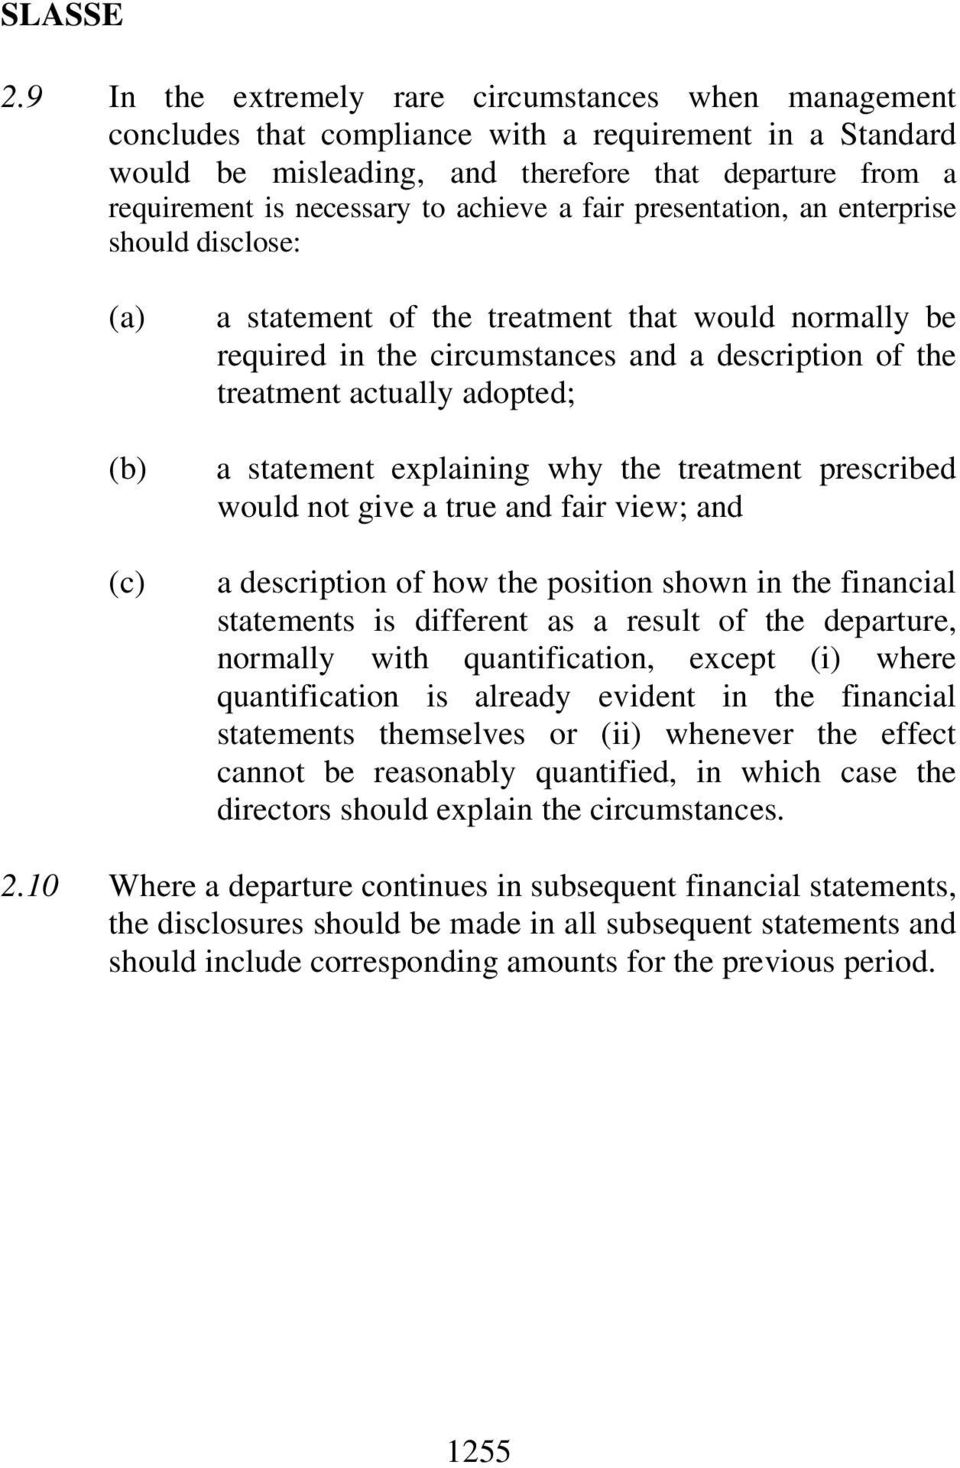 a statement explaining why the treatment prescribed would not give a true and fair view; and a description of how the position shown in the financial statements is different as a result of the